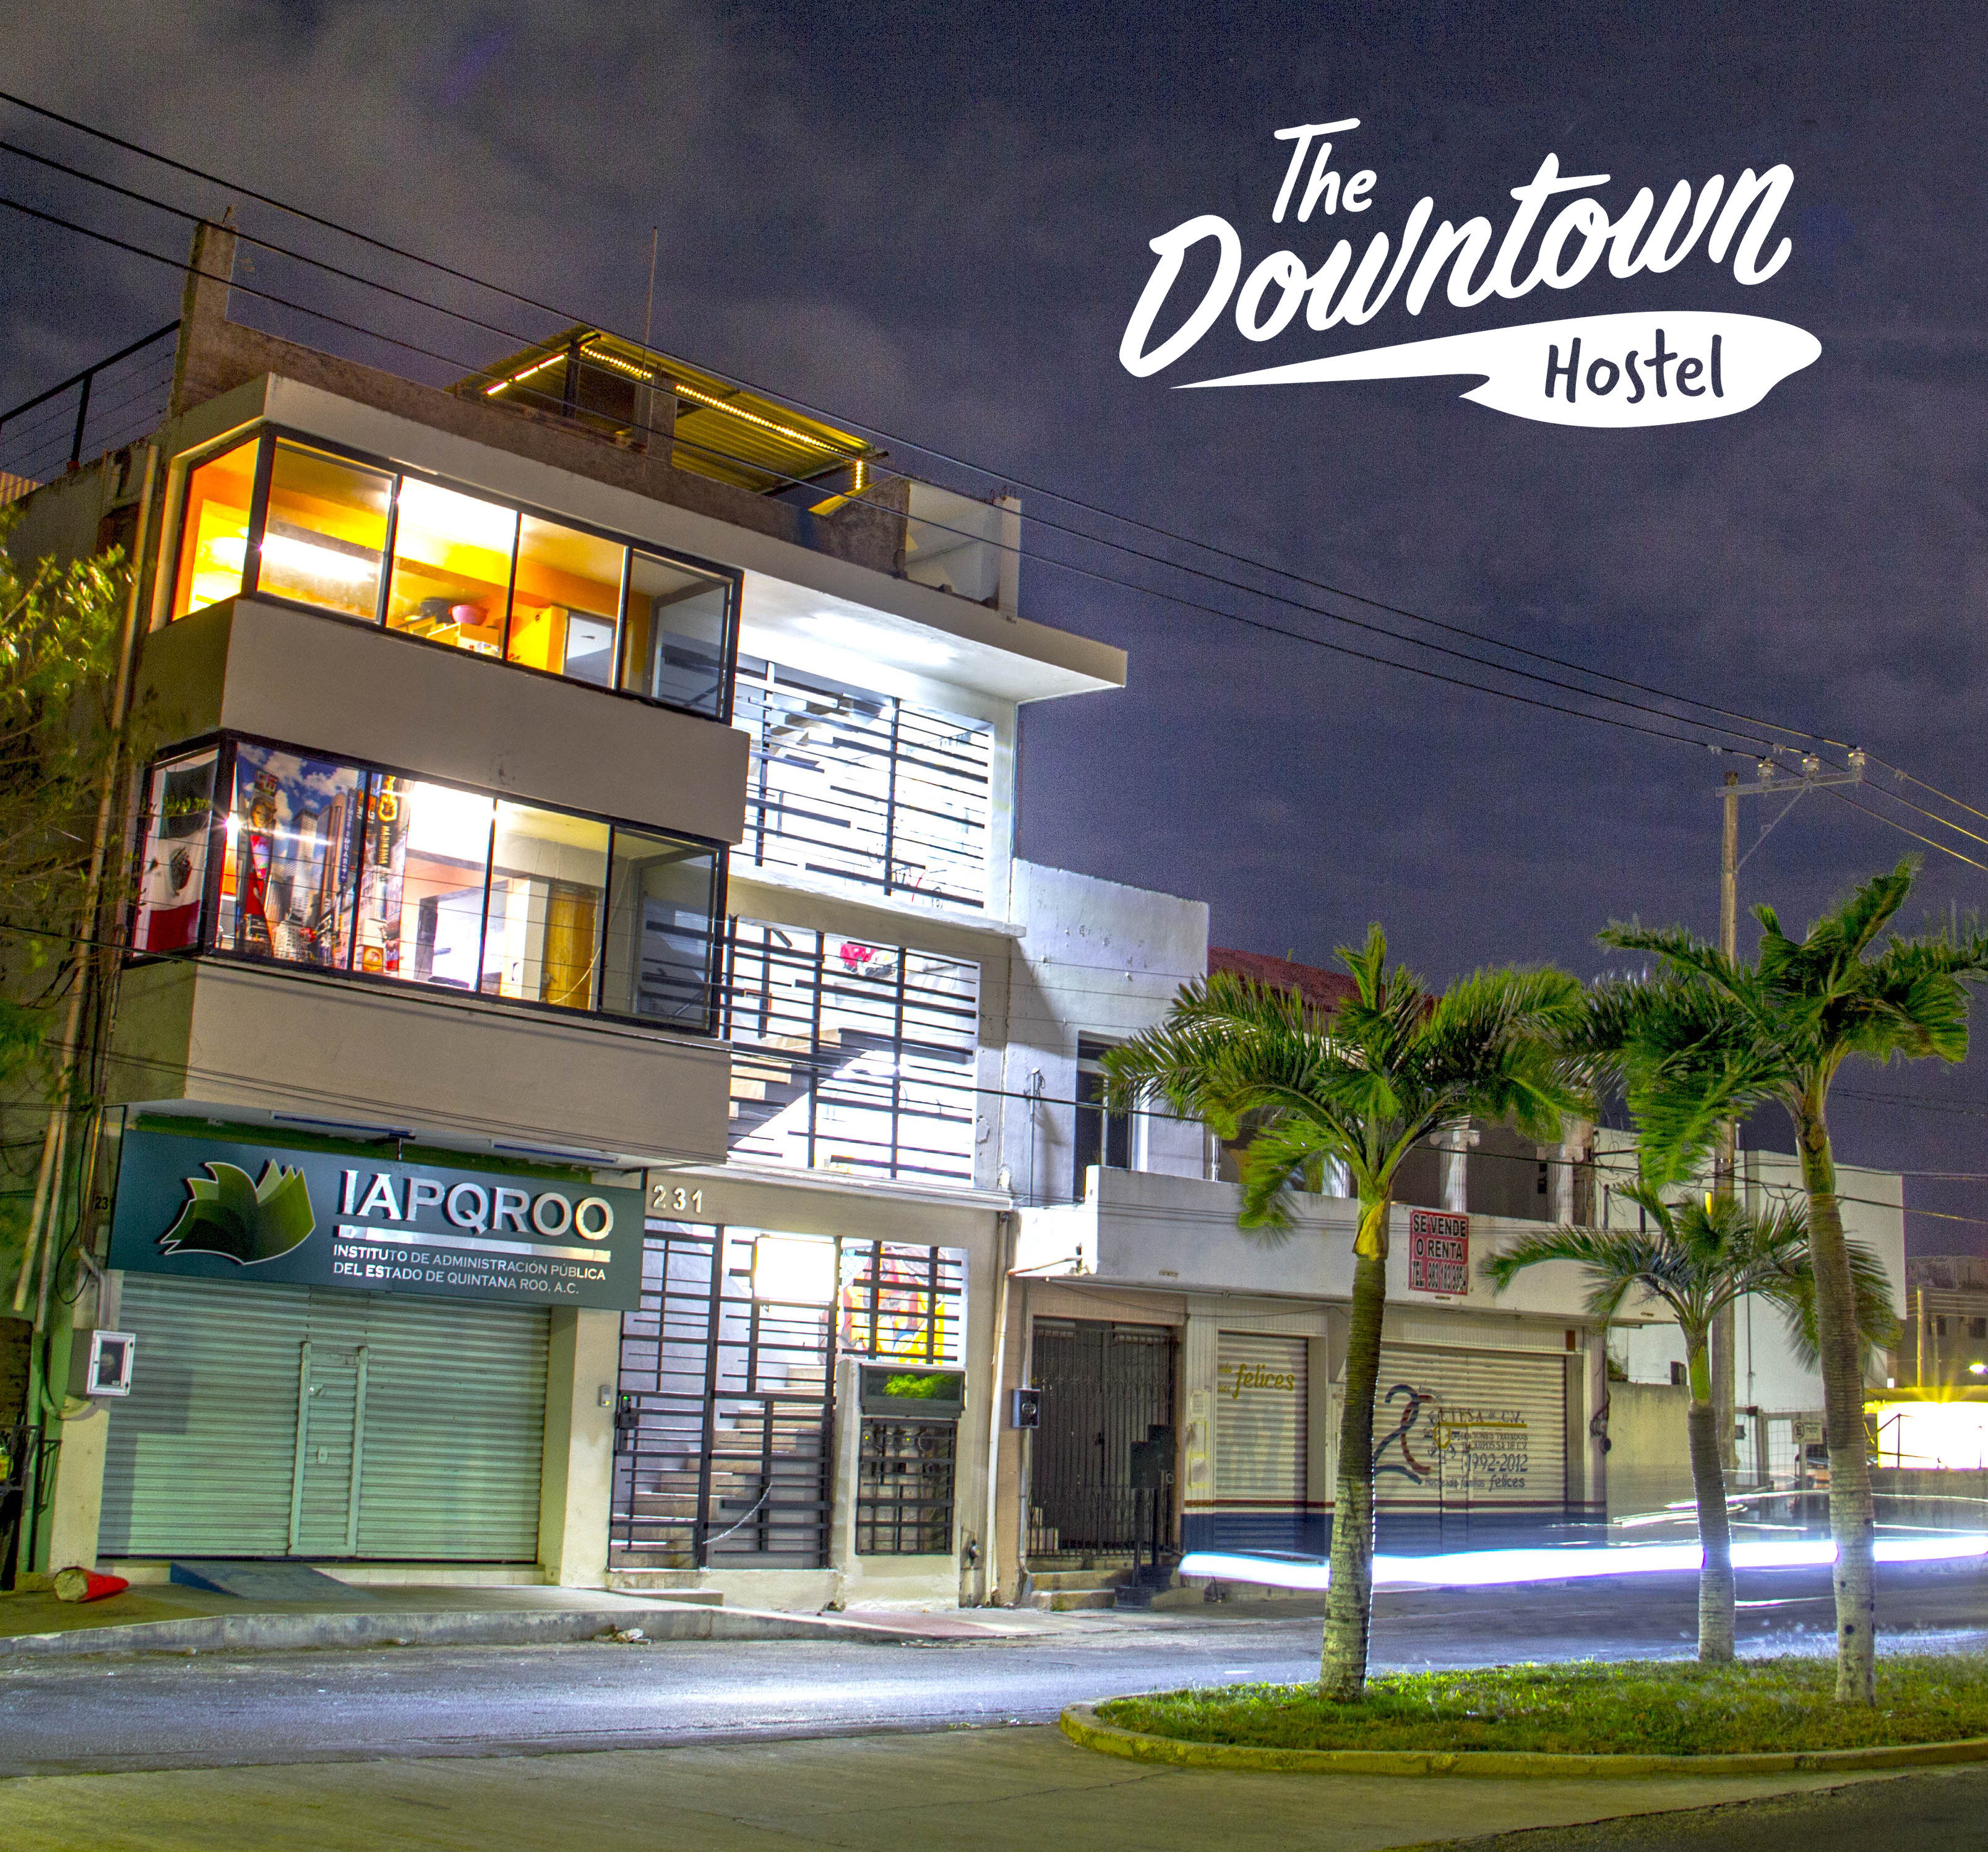 The Downtown Hostel